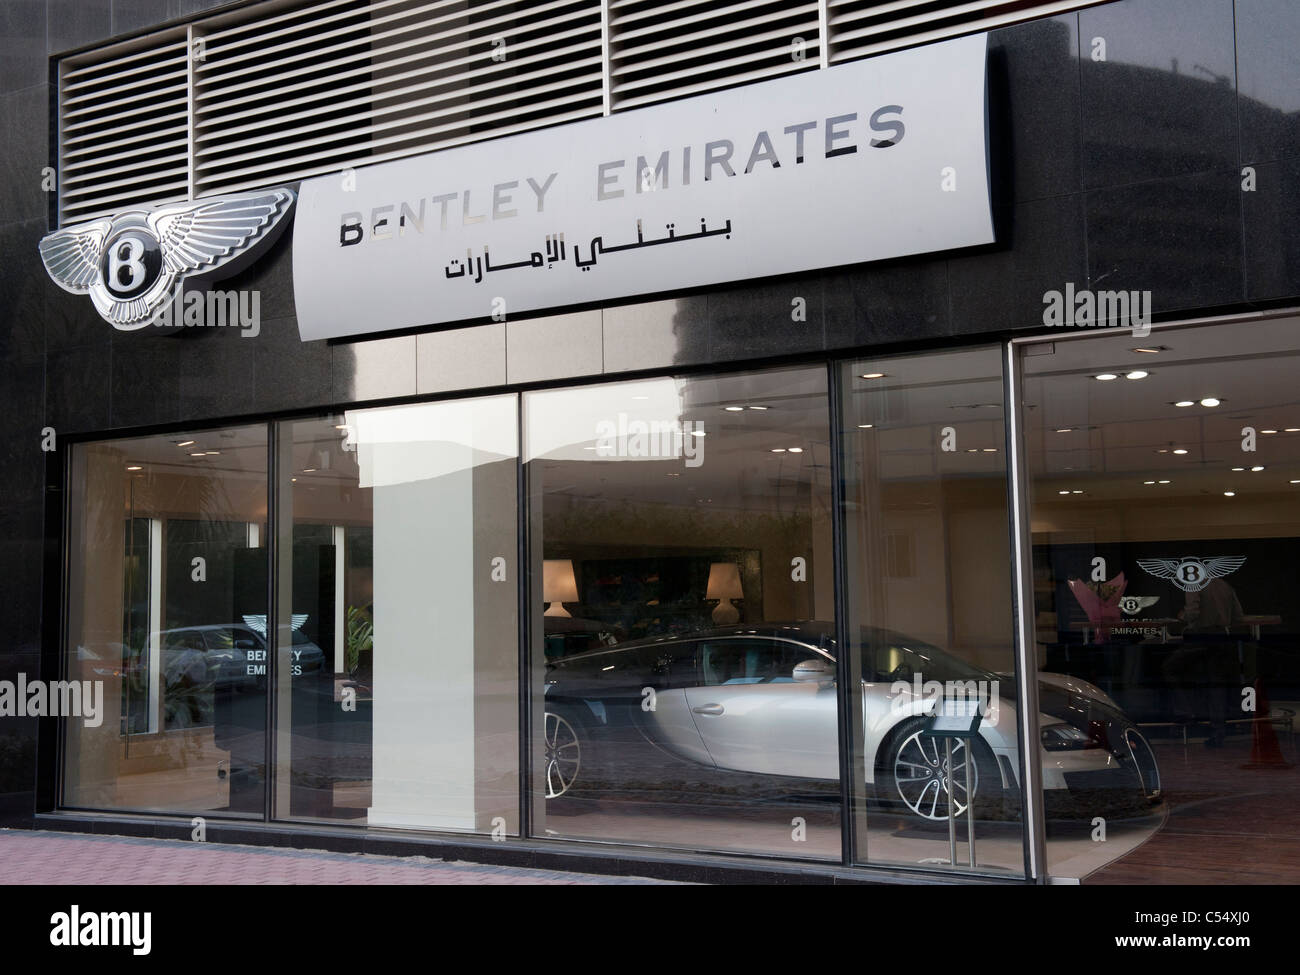 Bentley-Auto-Showroom in Dubai Vereinigte Arabische Emirate VAE Stockbild